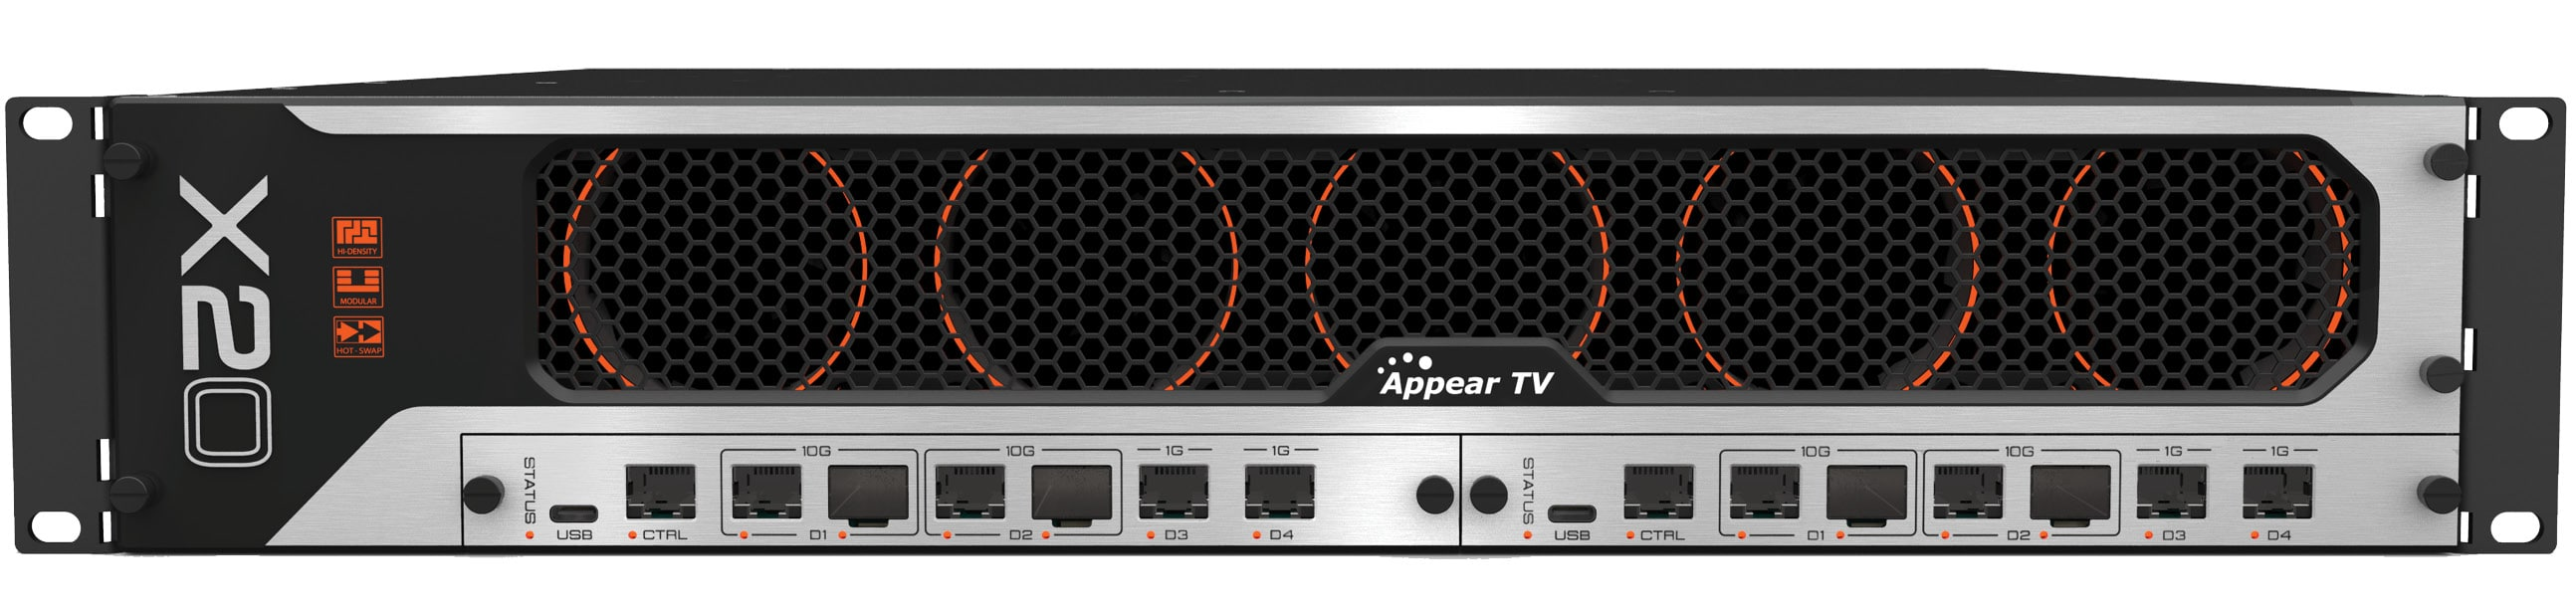 The Appear X platform for high-speed video networking, enhanced IP security and advanced compression. AVC / H.264, HEVC / H.265, TICO and JPEG2000 decoding, transcoding and encoding. Satellite demodulation and modulation and high-speed IP interfaces. Designed for remote production, contribution and distribution